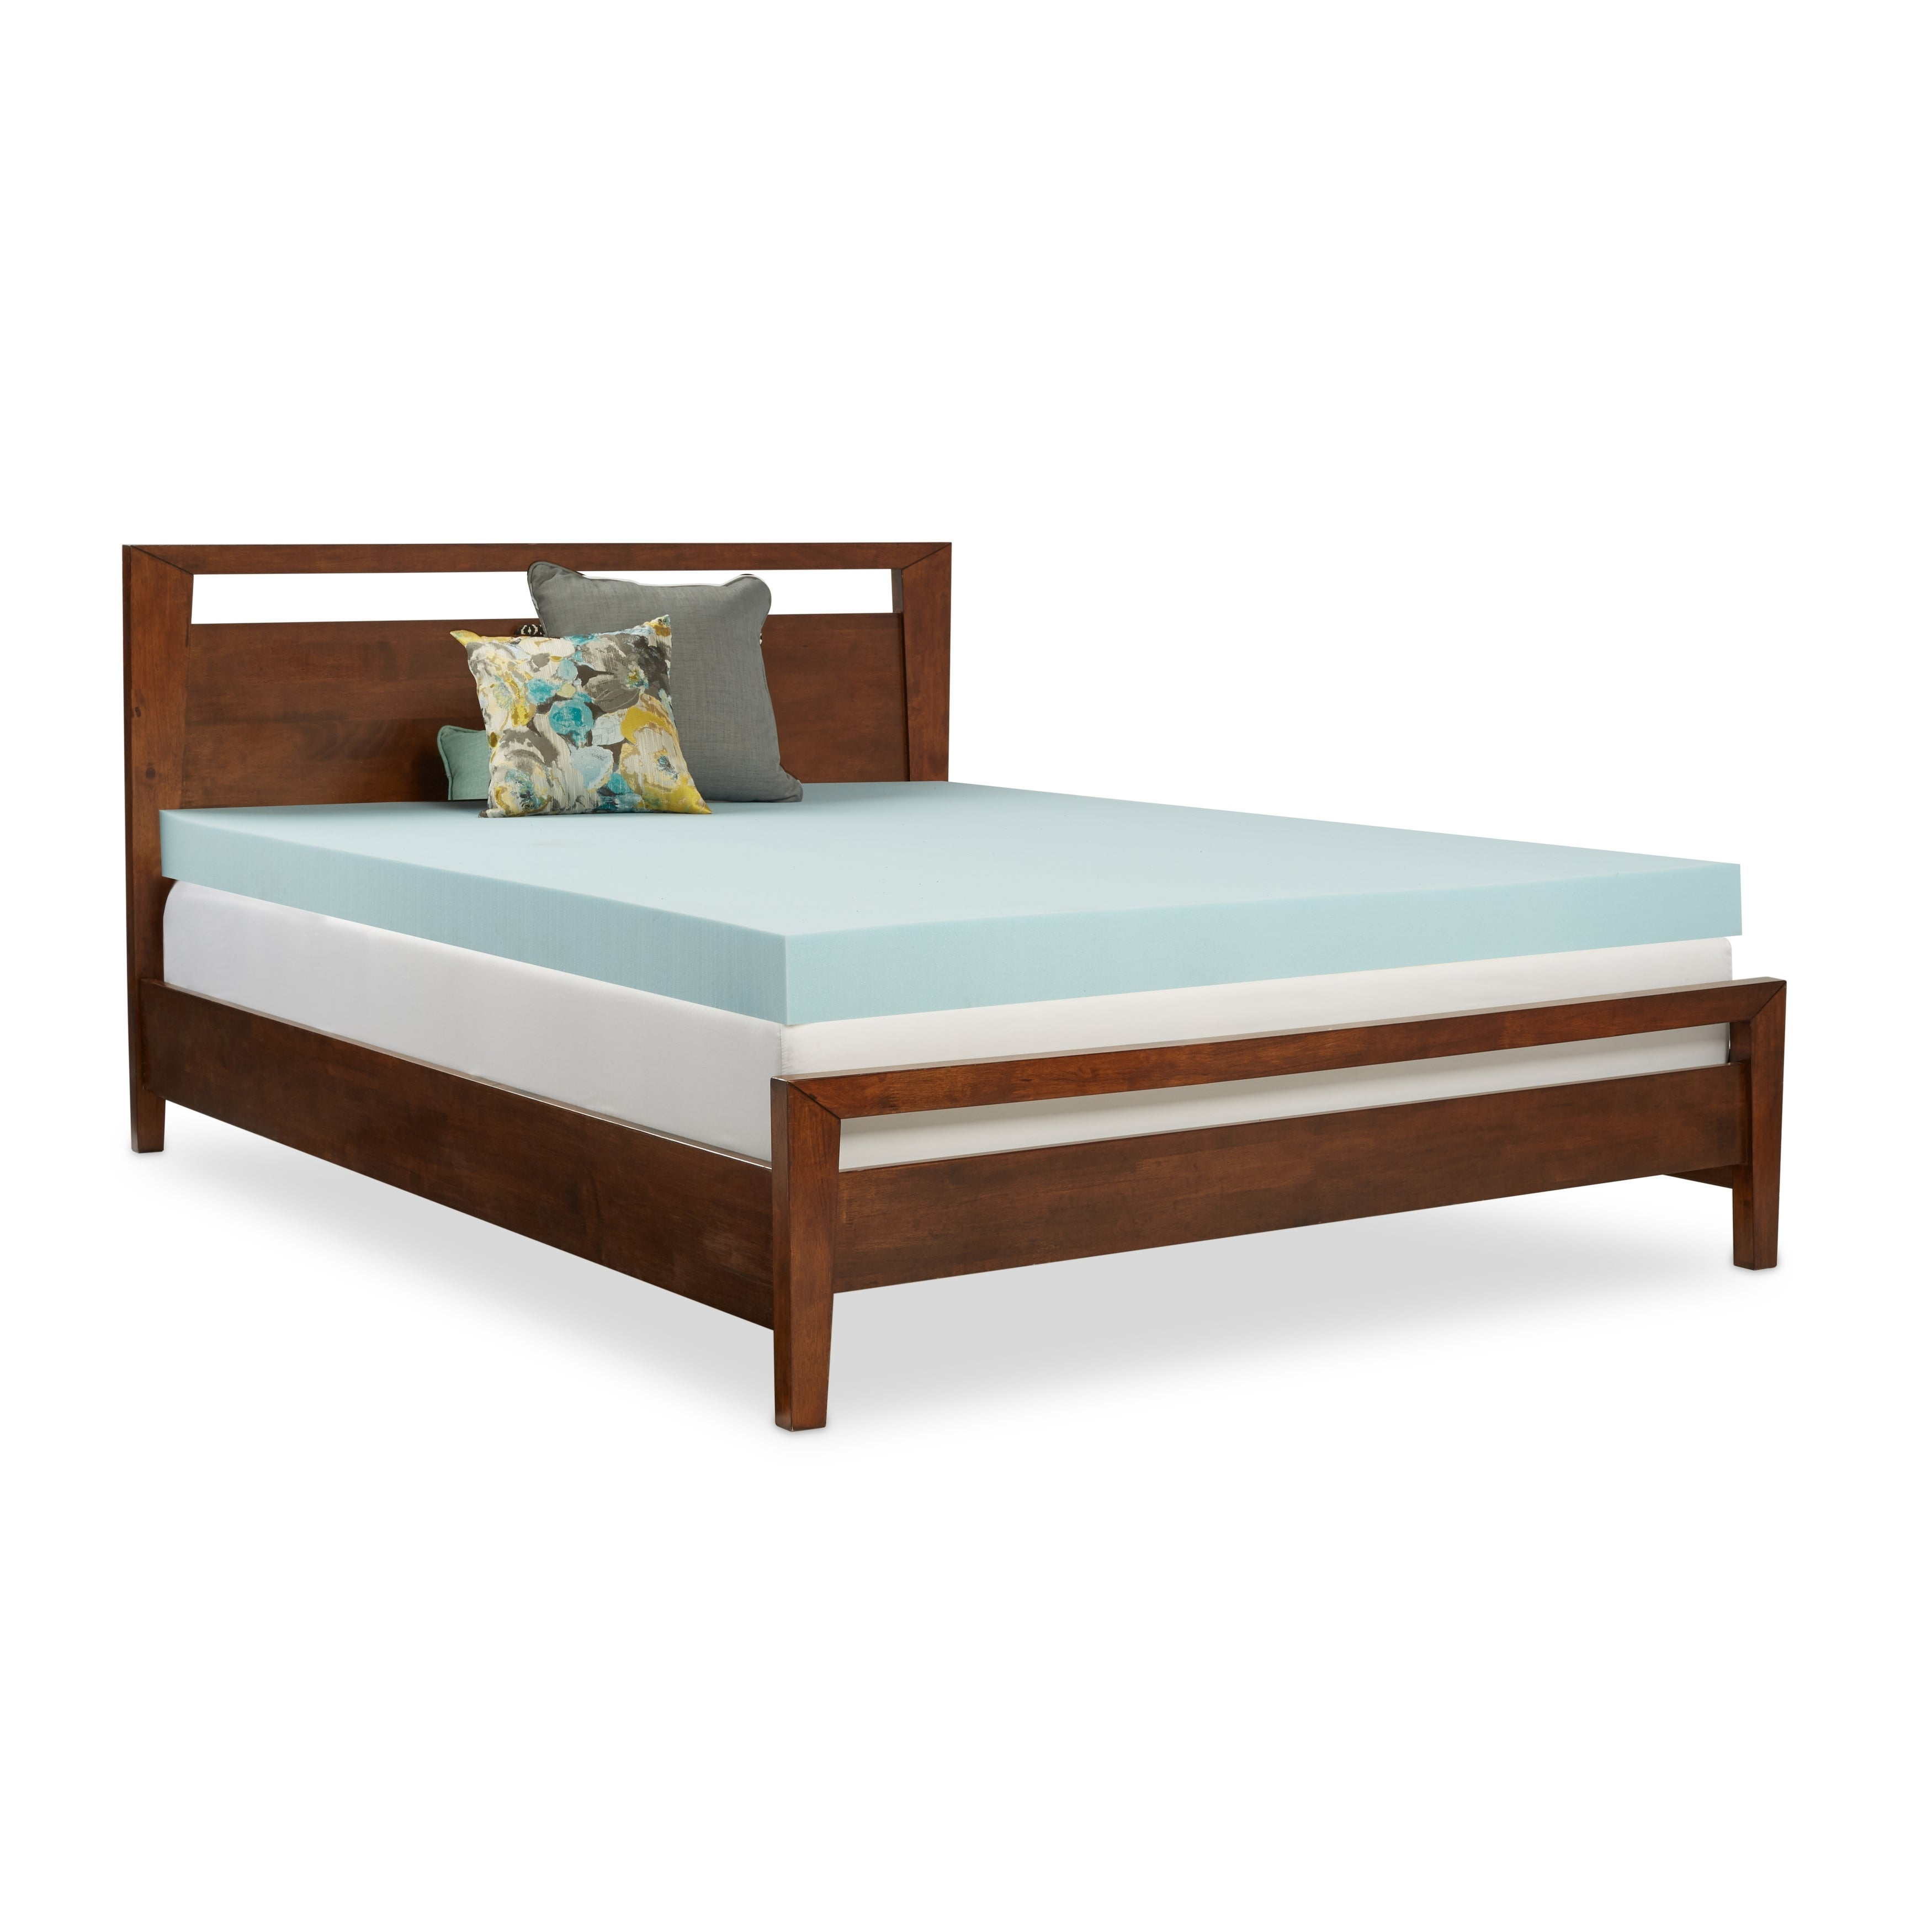 dreamfoam bag in ikea beds frame dreams sets up ethan queen ultimate full trundle allen pop twin bedding white bed a